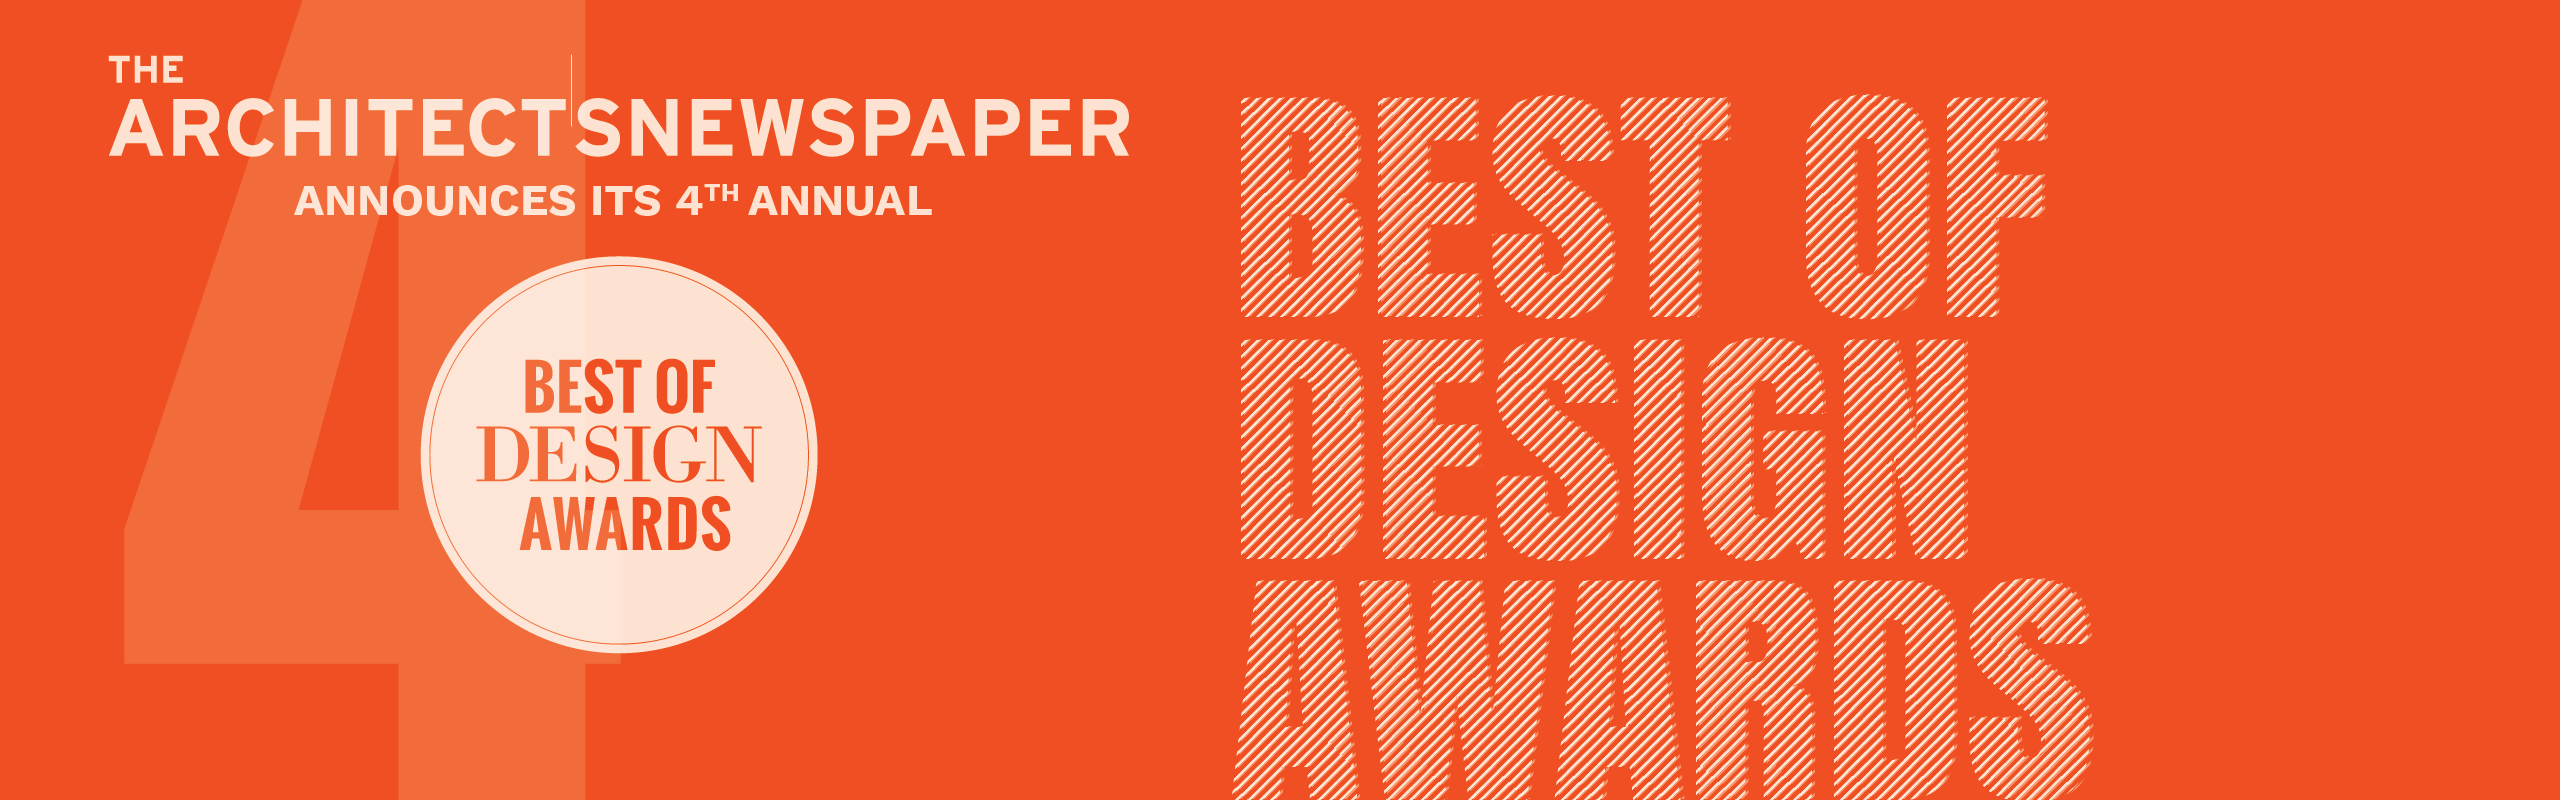 2016 Best of Design Award for ..